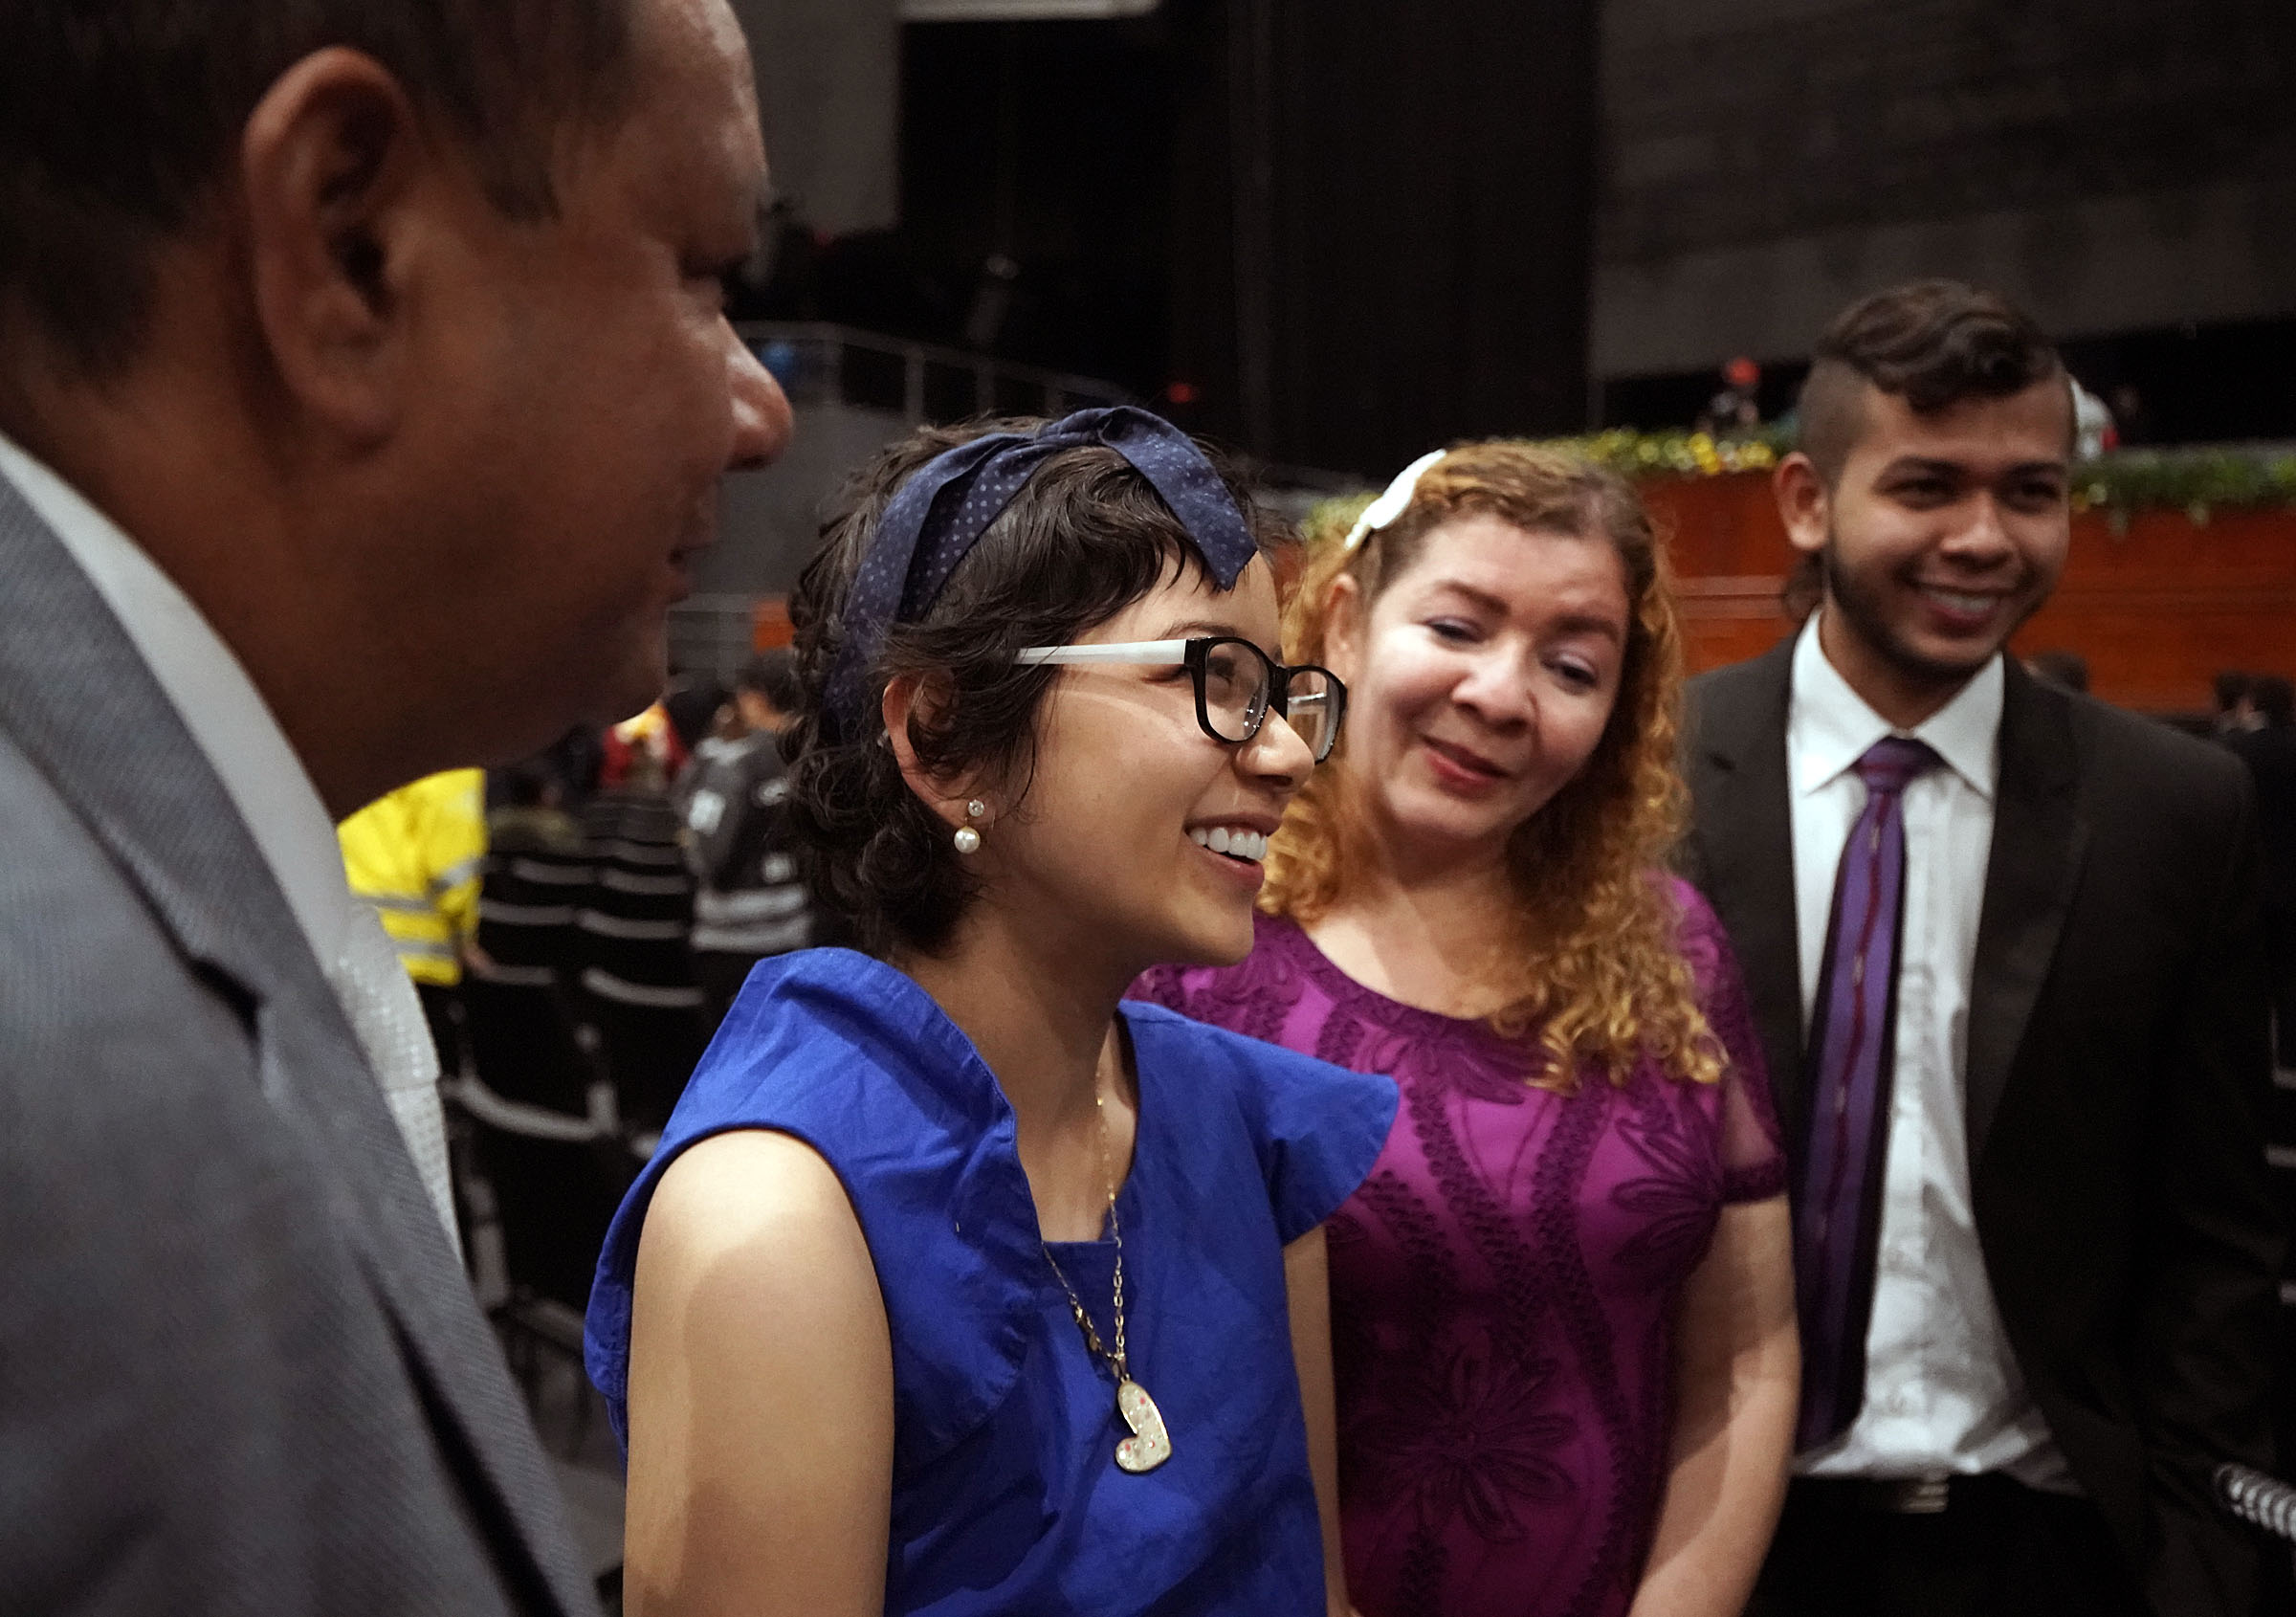 Brenyi Grondona stands with her family as she is interviewed following a Latin America Ministry Tour devotional in Bogota, Colombia on Sunday, Aug. 25, 2019. Other family members are Juan Carlos Grondona, father, left, Luzdary Ortiz de Grondona, mother, second from right, and Braider Grondona, brother, right.